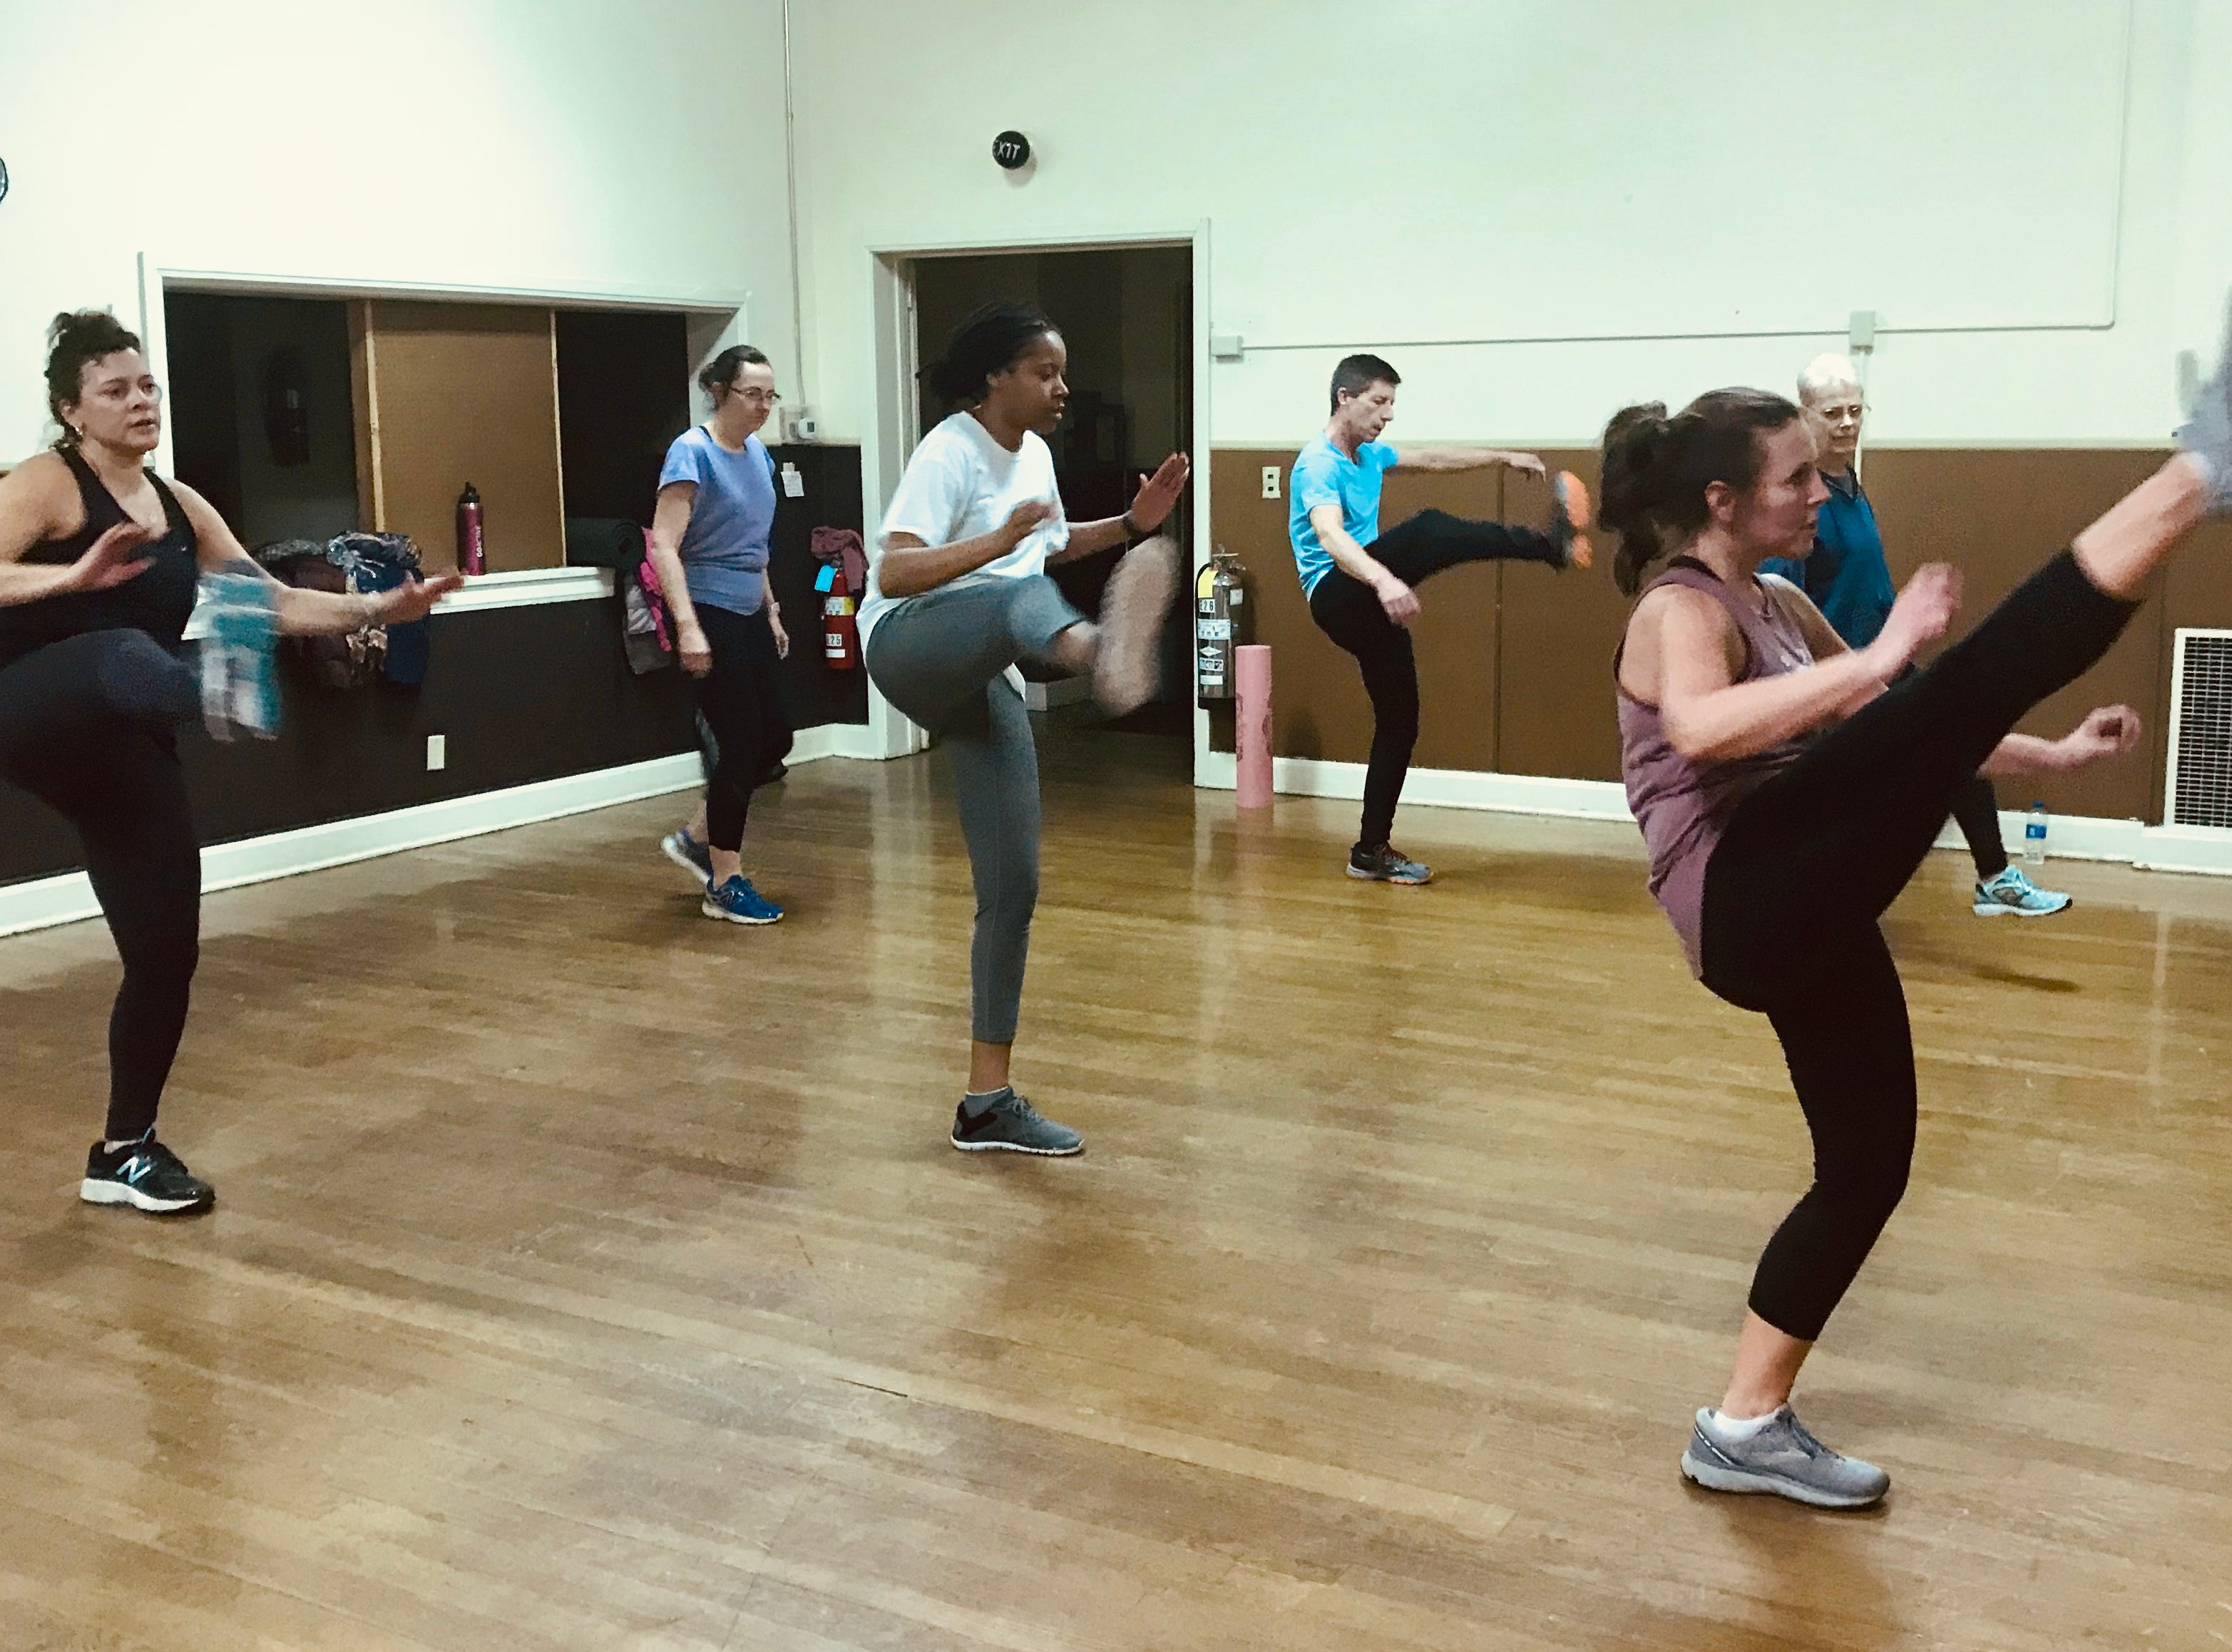 Former Fox 43 anchor Jaime Garland leads a cardio kickboxing class in the final No Sweat York winter session on February 26, 2019.